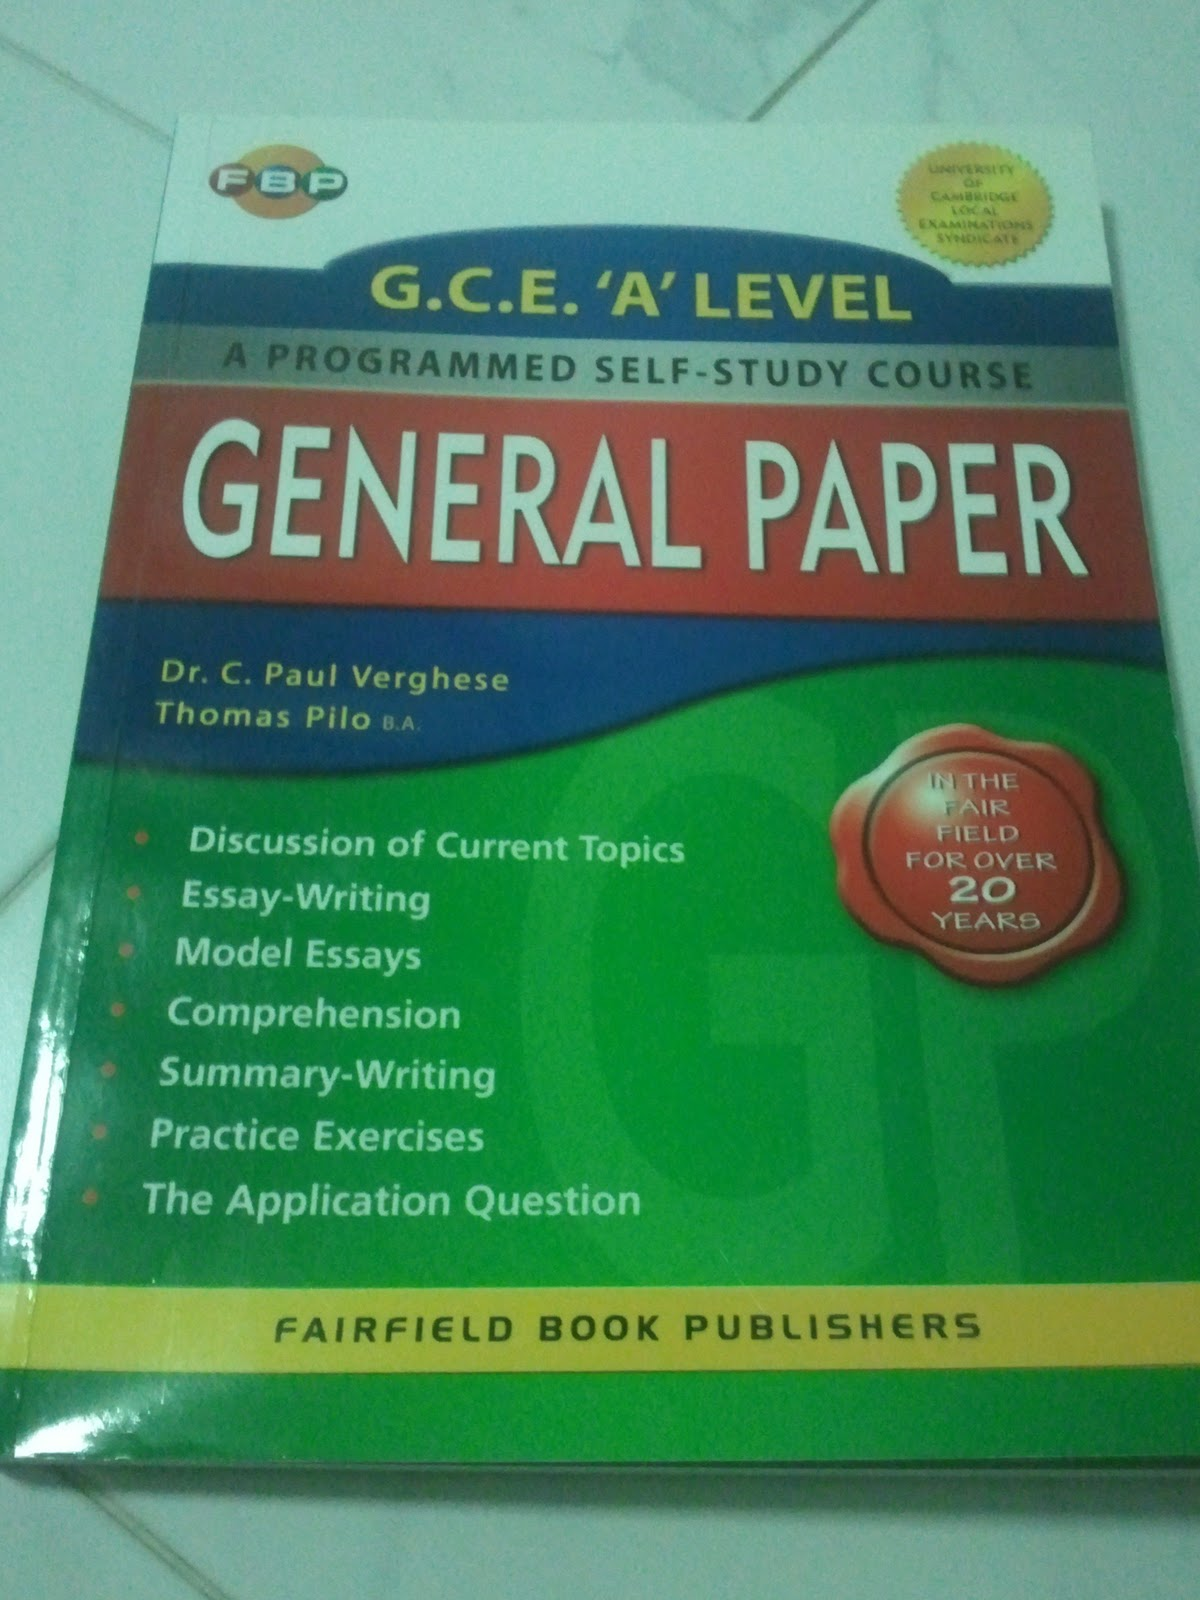 self study essay books notes for at affordable rates dido s blog  books notes for at affordable rates gce a level general paper a programmed self study course